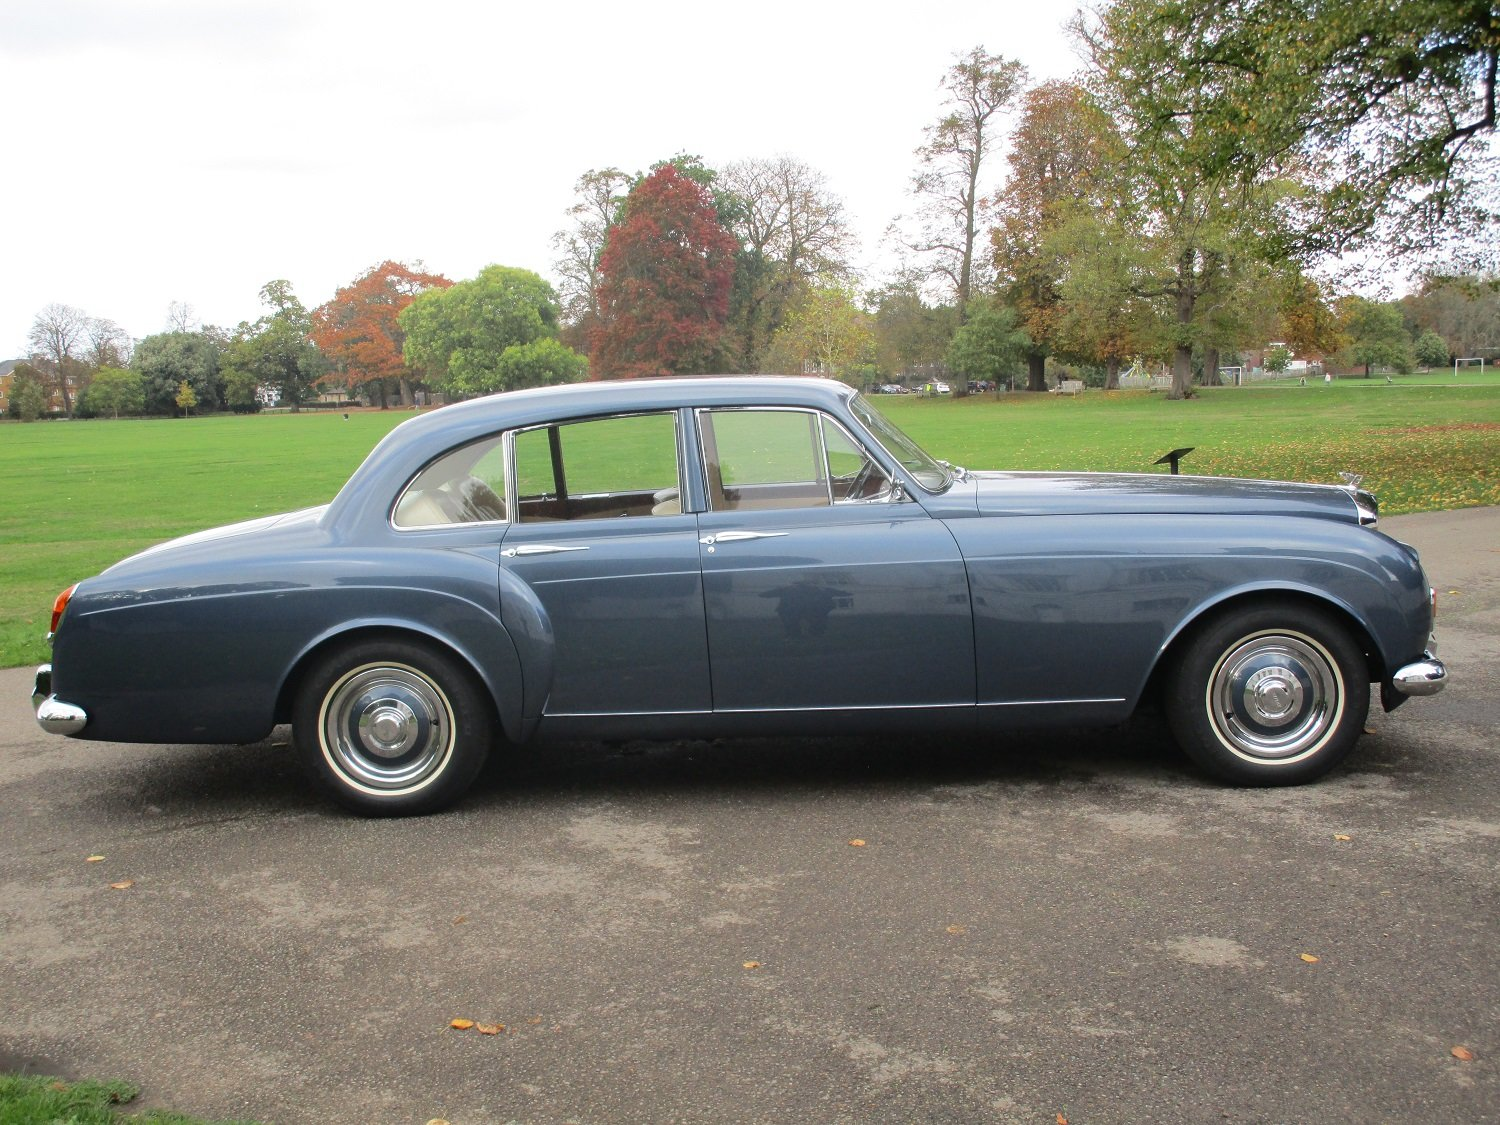 1963 Bentley S3 Continental Six Light Flying Spur by MPW For Sale (picture 1 of 1)